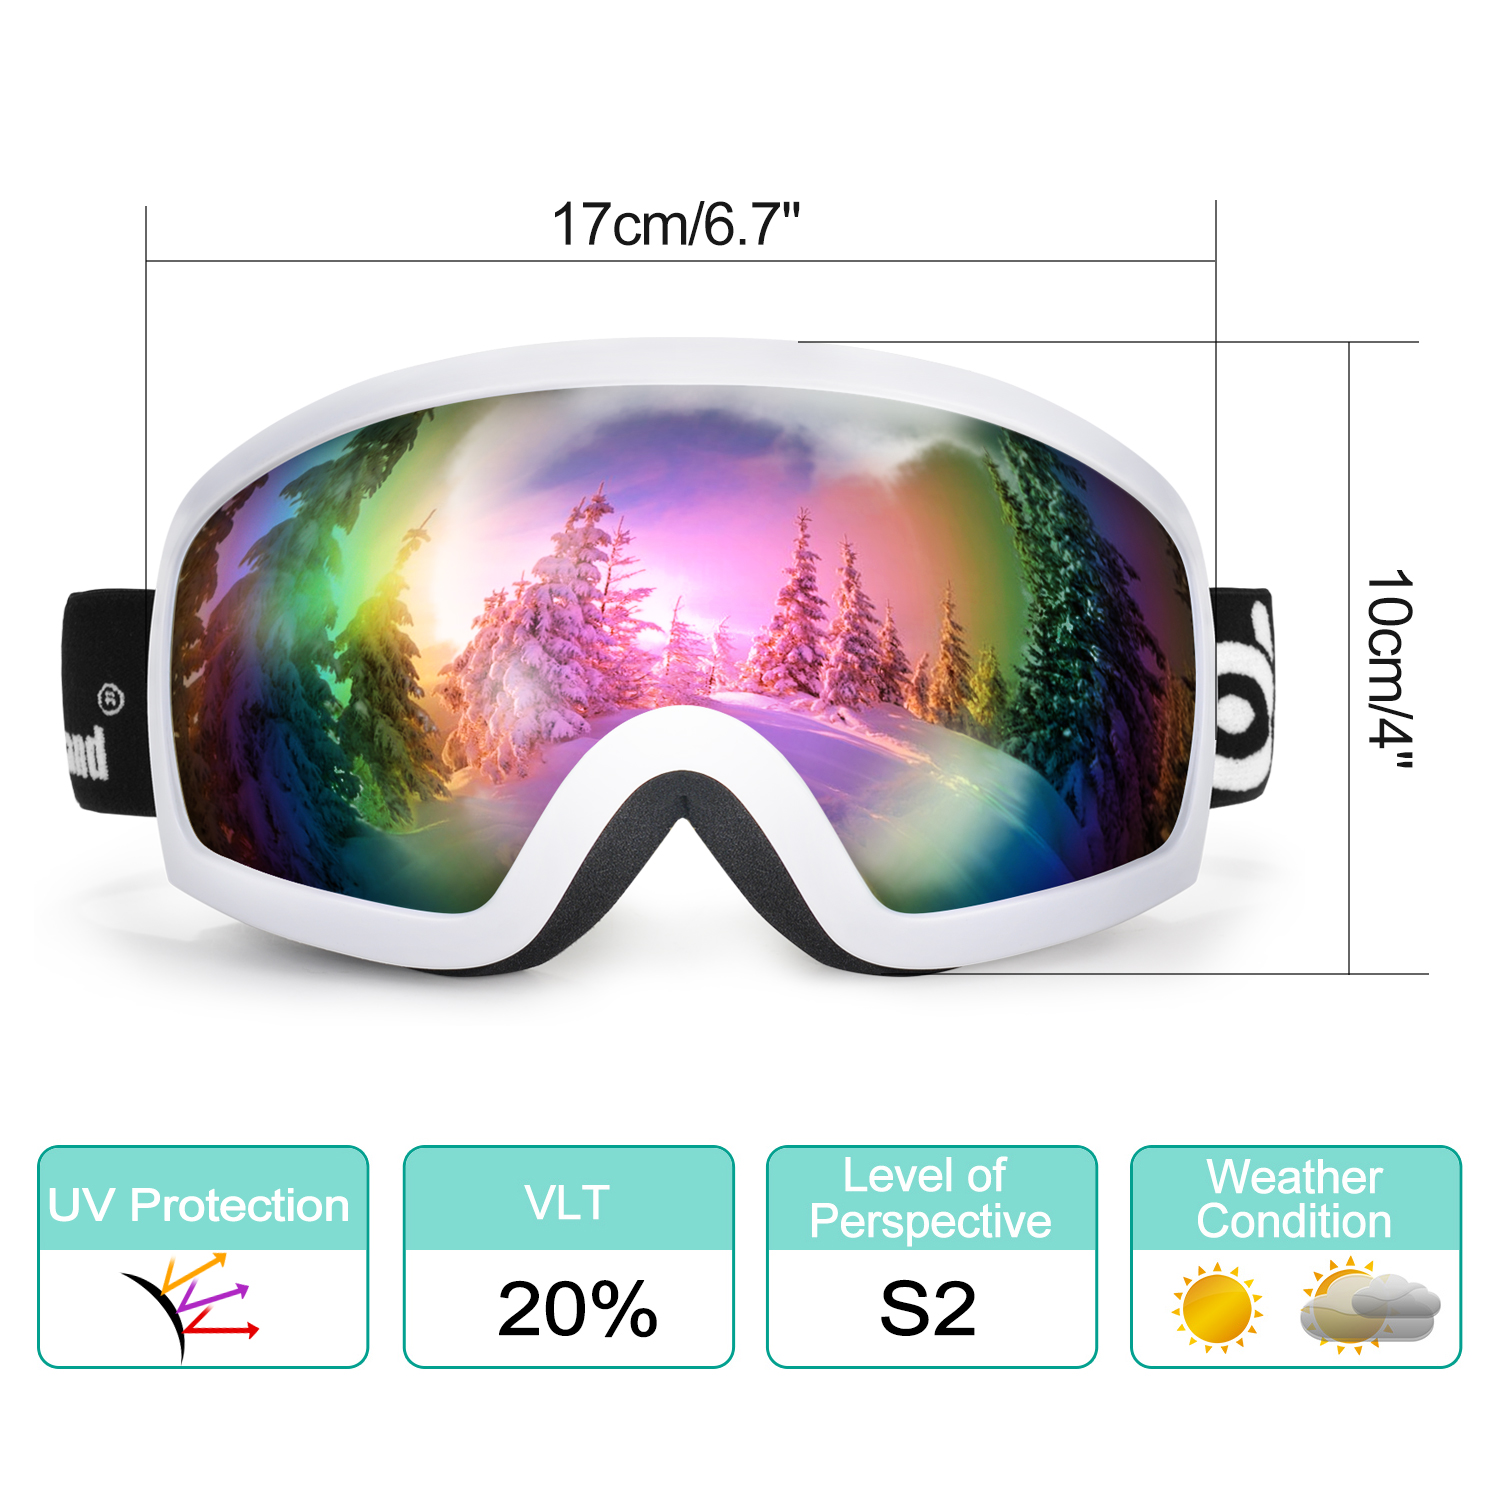 Odoland S2 General OTG Ski Goggles Double Anti-Fog Lenses w  UV400 Protection for Adult Snowboarding Skating Sledding by